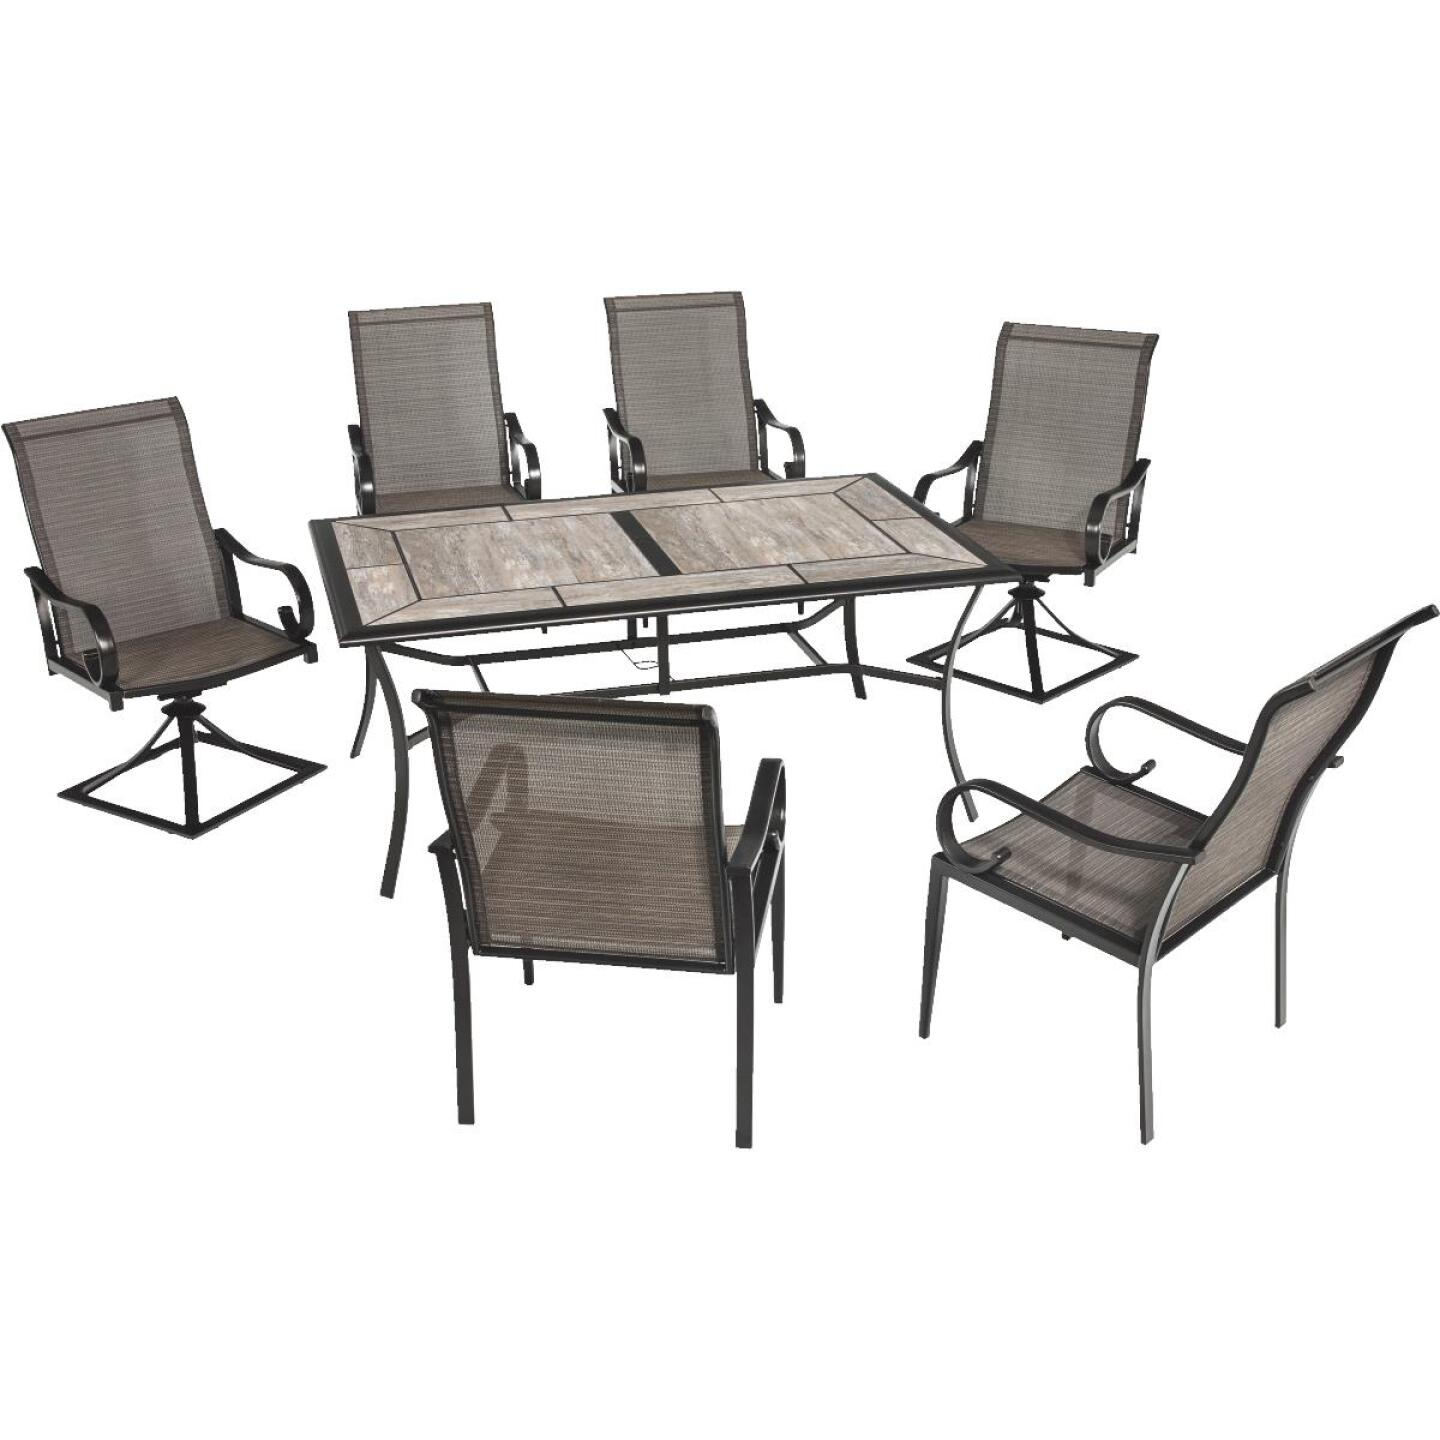 Outdoor Expressions Berkshire 7-Piece Dining Set Image 78